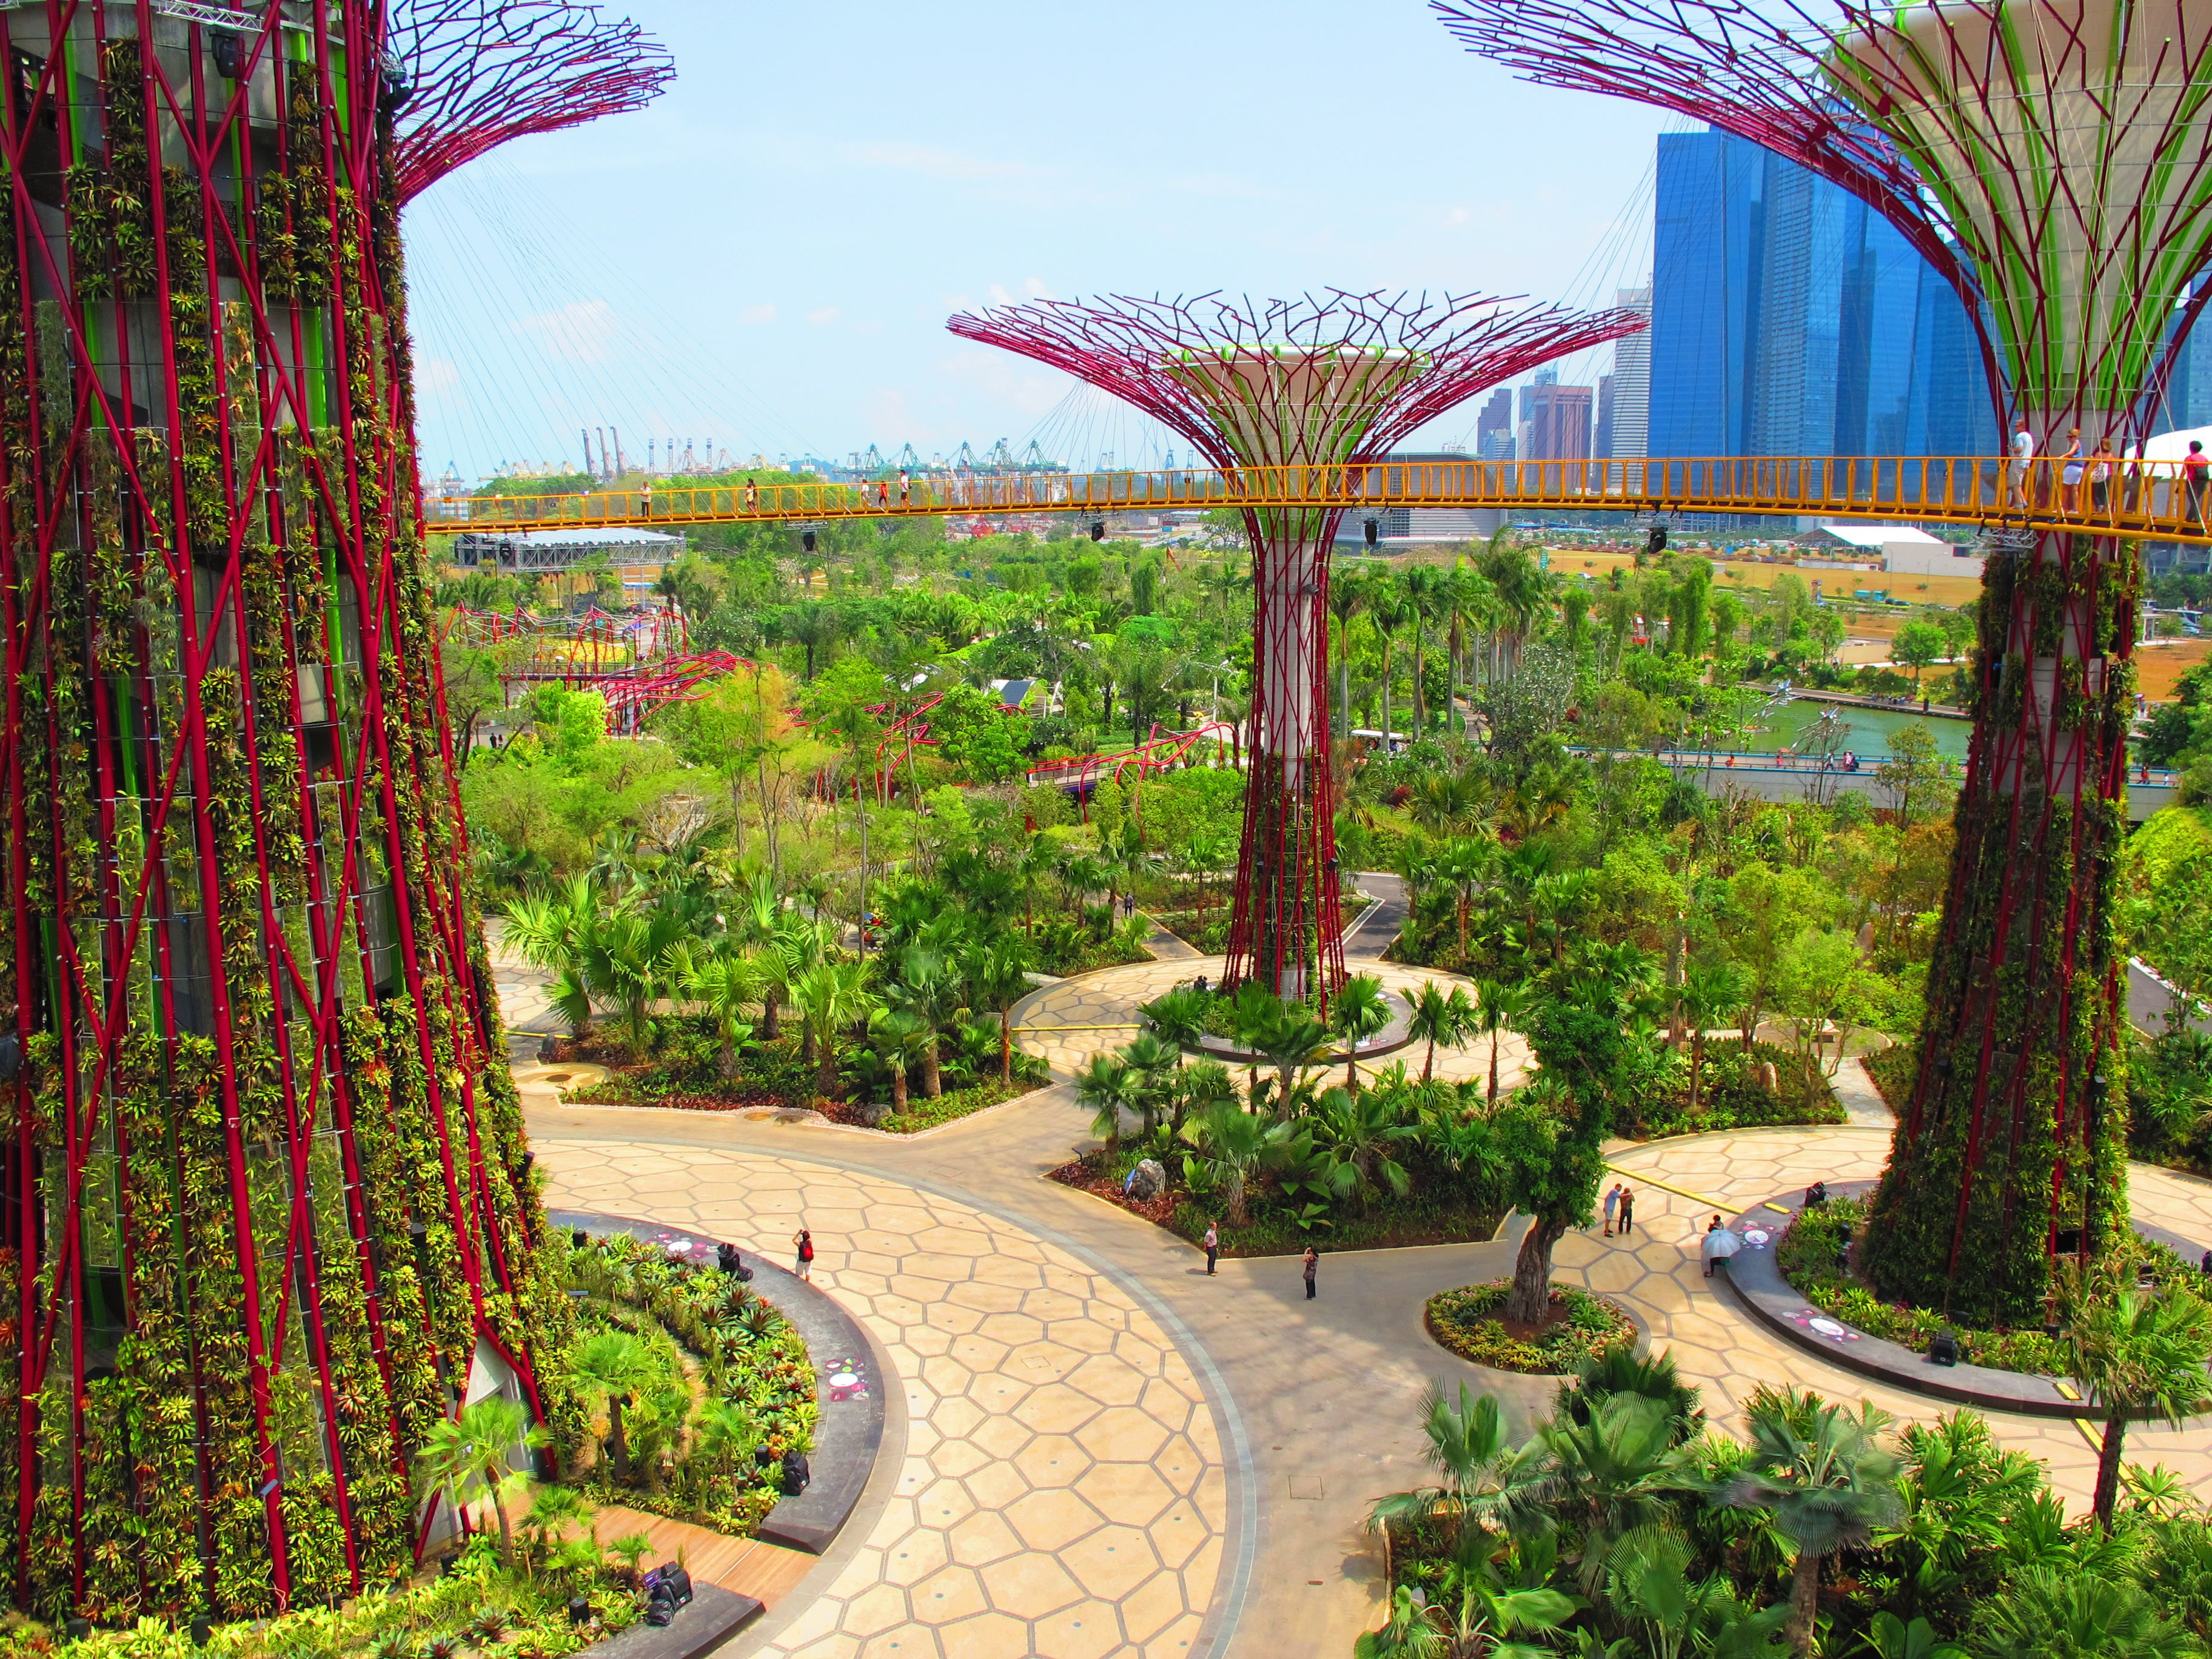 ab638ab9f246ff989bd680f4a5d8e36c - Fun Facts About Gardens By The Bay